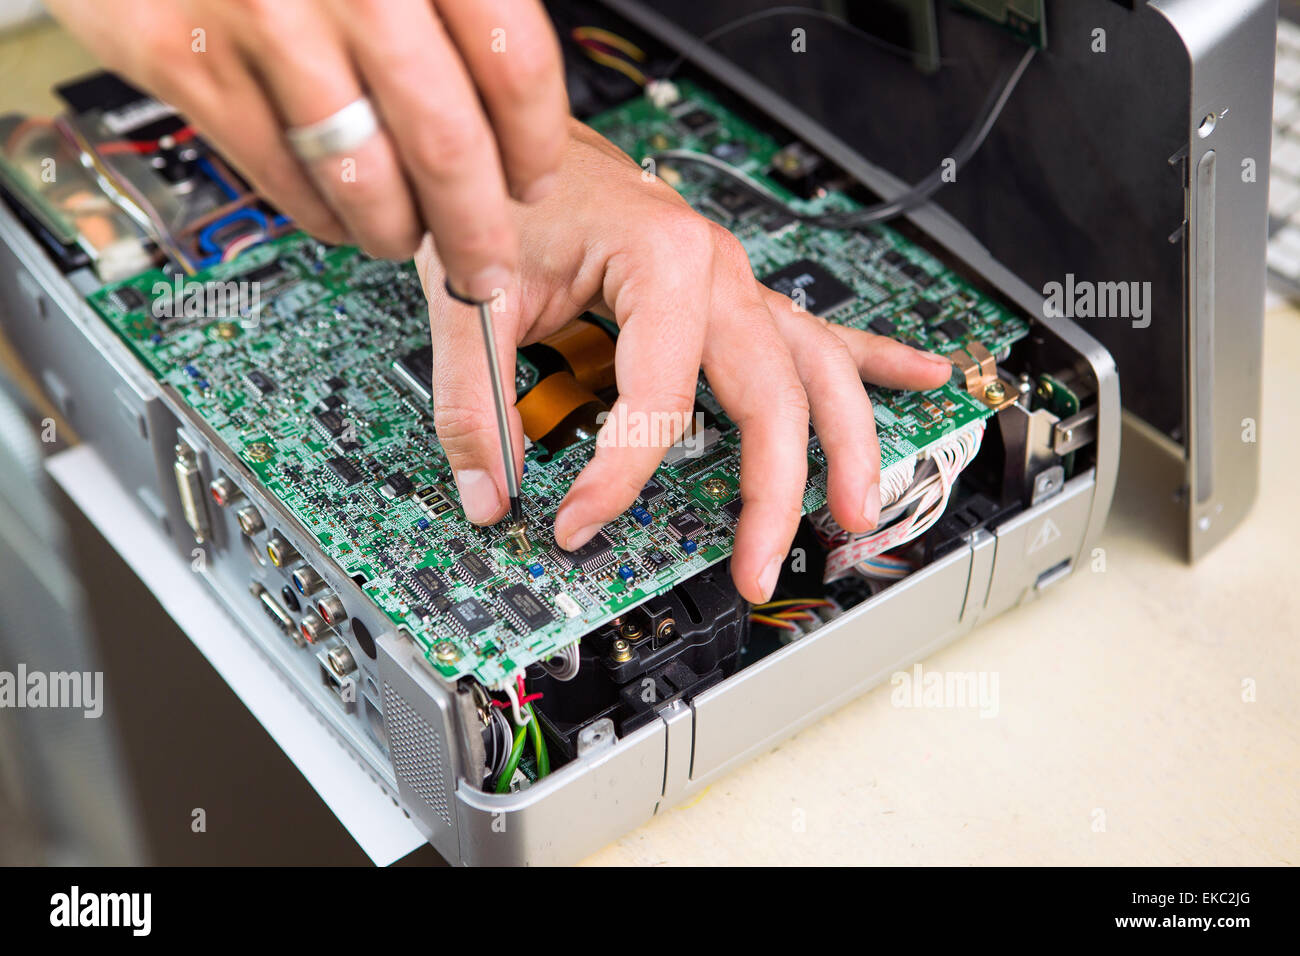 Man repairing circuit board, close up - Stock Image